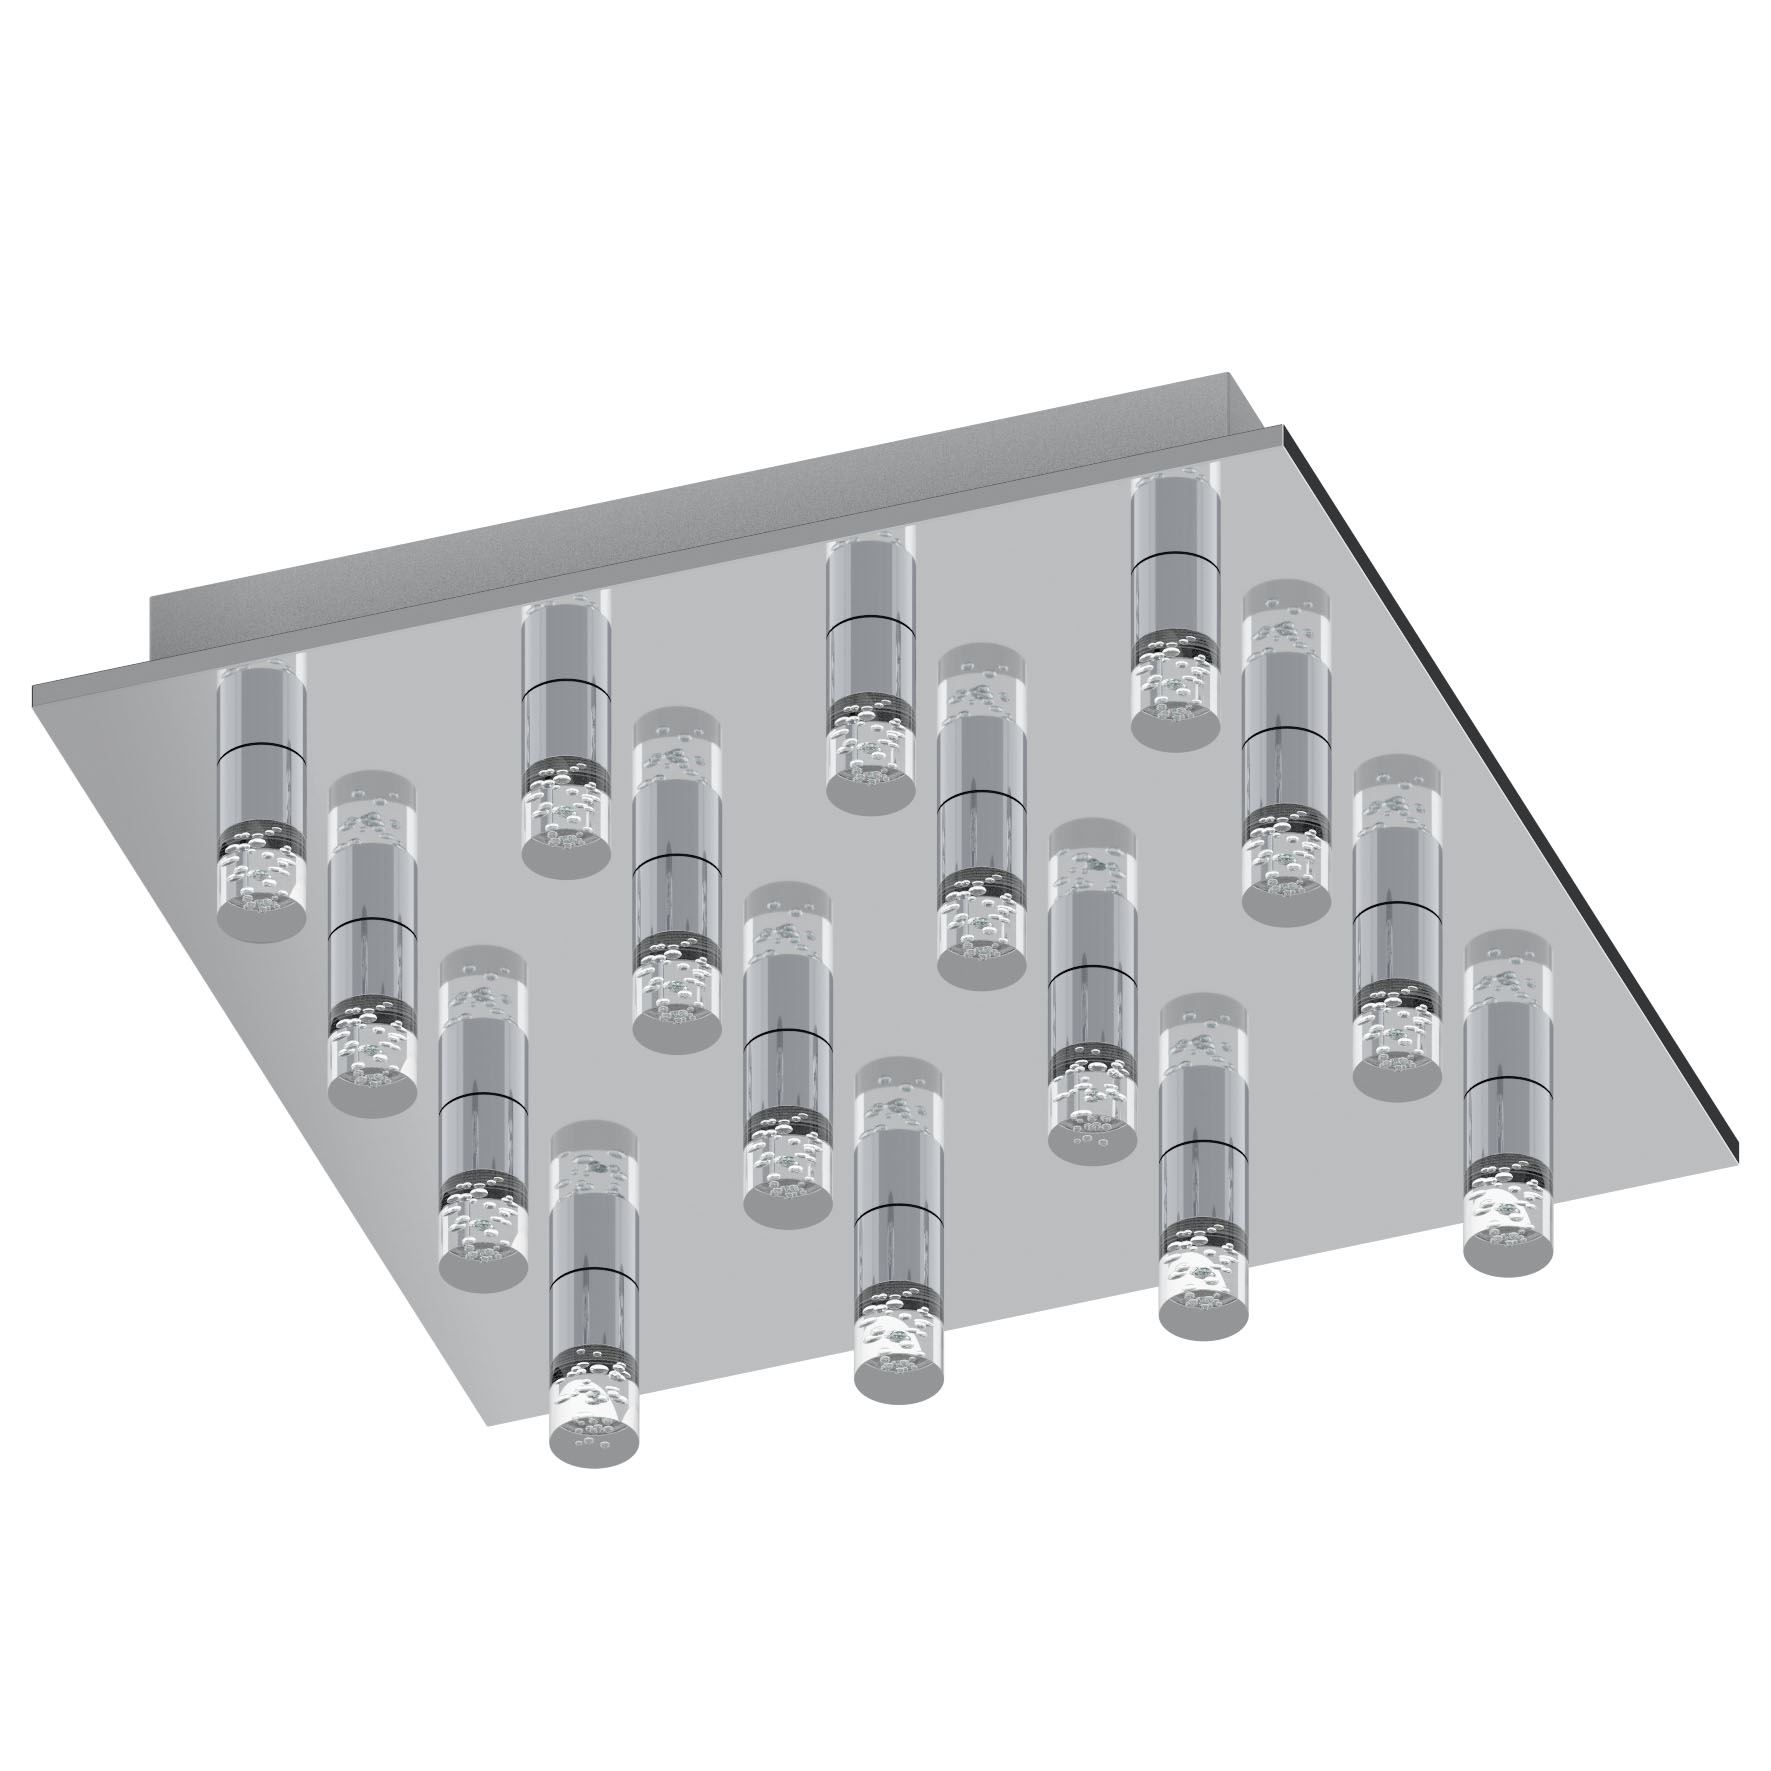 TEOCELO Modern LED Ceiling Light 16 Light Chrome Clear Finish